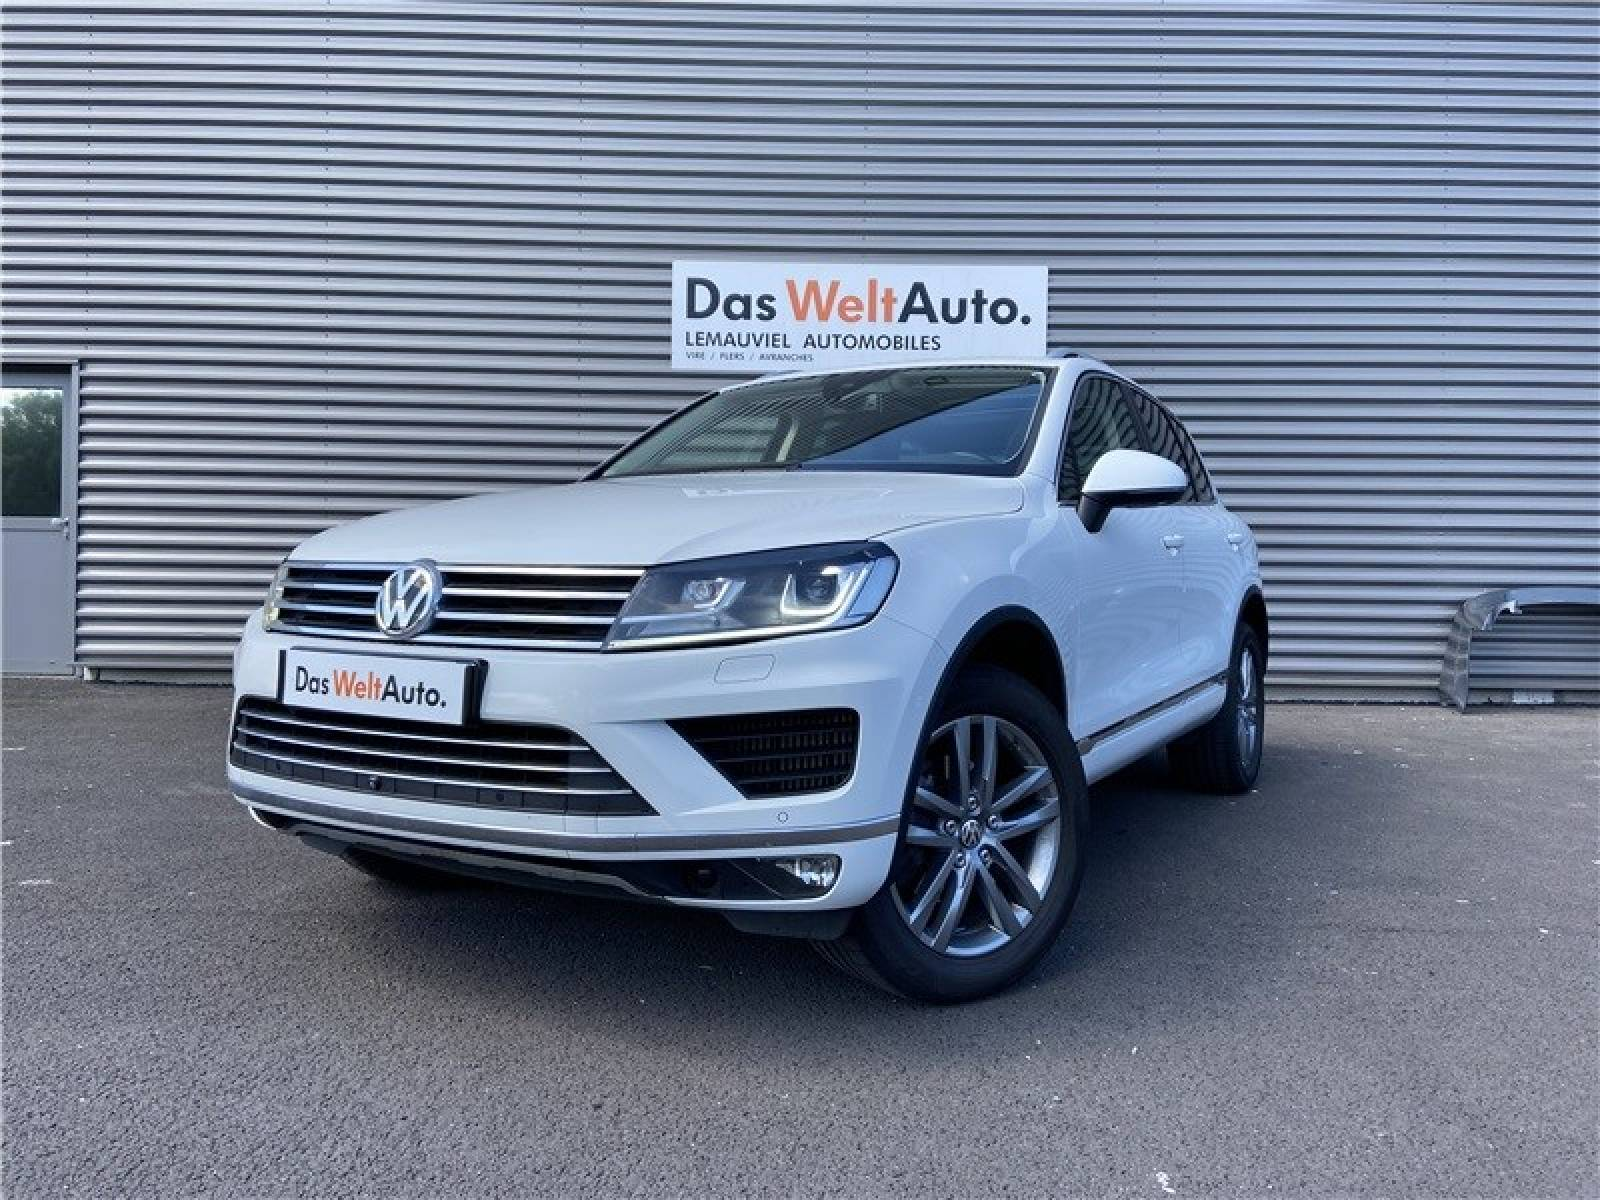 VOLKSWAGEN Touareg 3.0 V6 TDI 262 4Motion BlueMotion Technology - véhicule d'occasion - LEMAUVIEL AUTOMOBILES - Présentation site web V2 - Lemauviel Automobiles - VIRE - 14500 - VIRE - 1